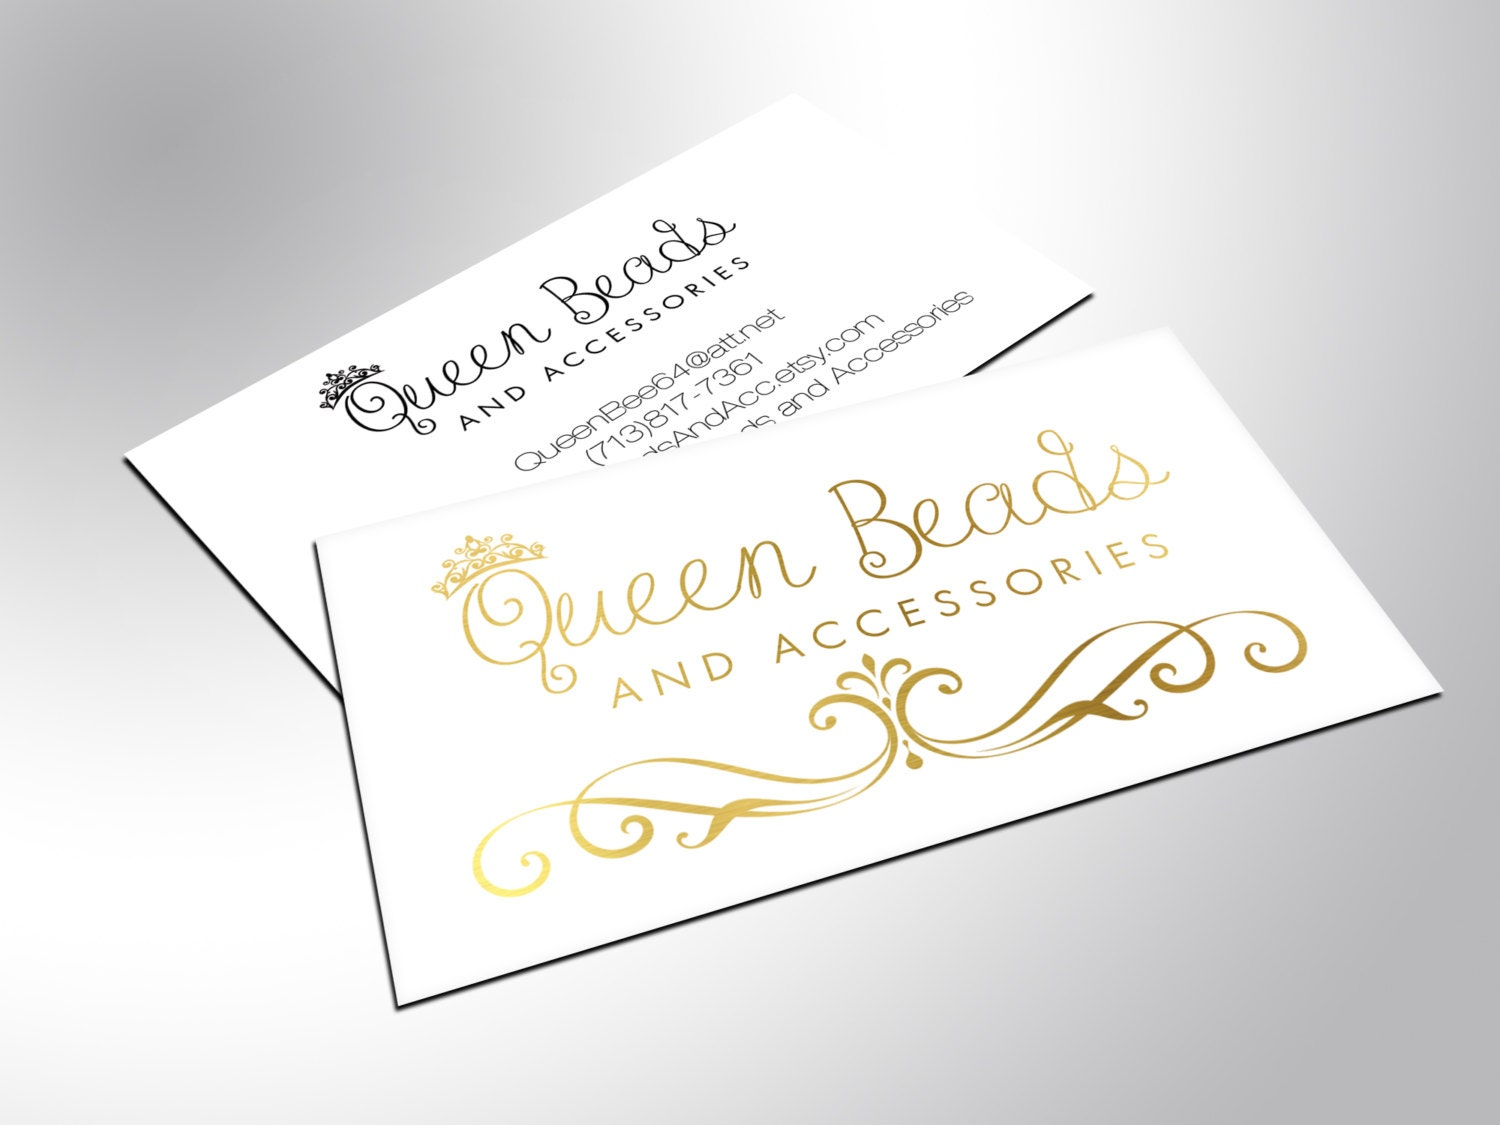 Gold Foil Business Cards Awesome Business Cards